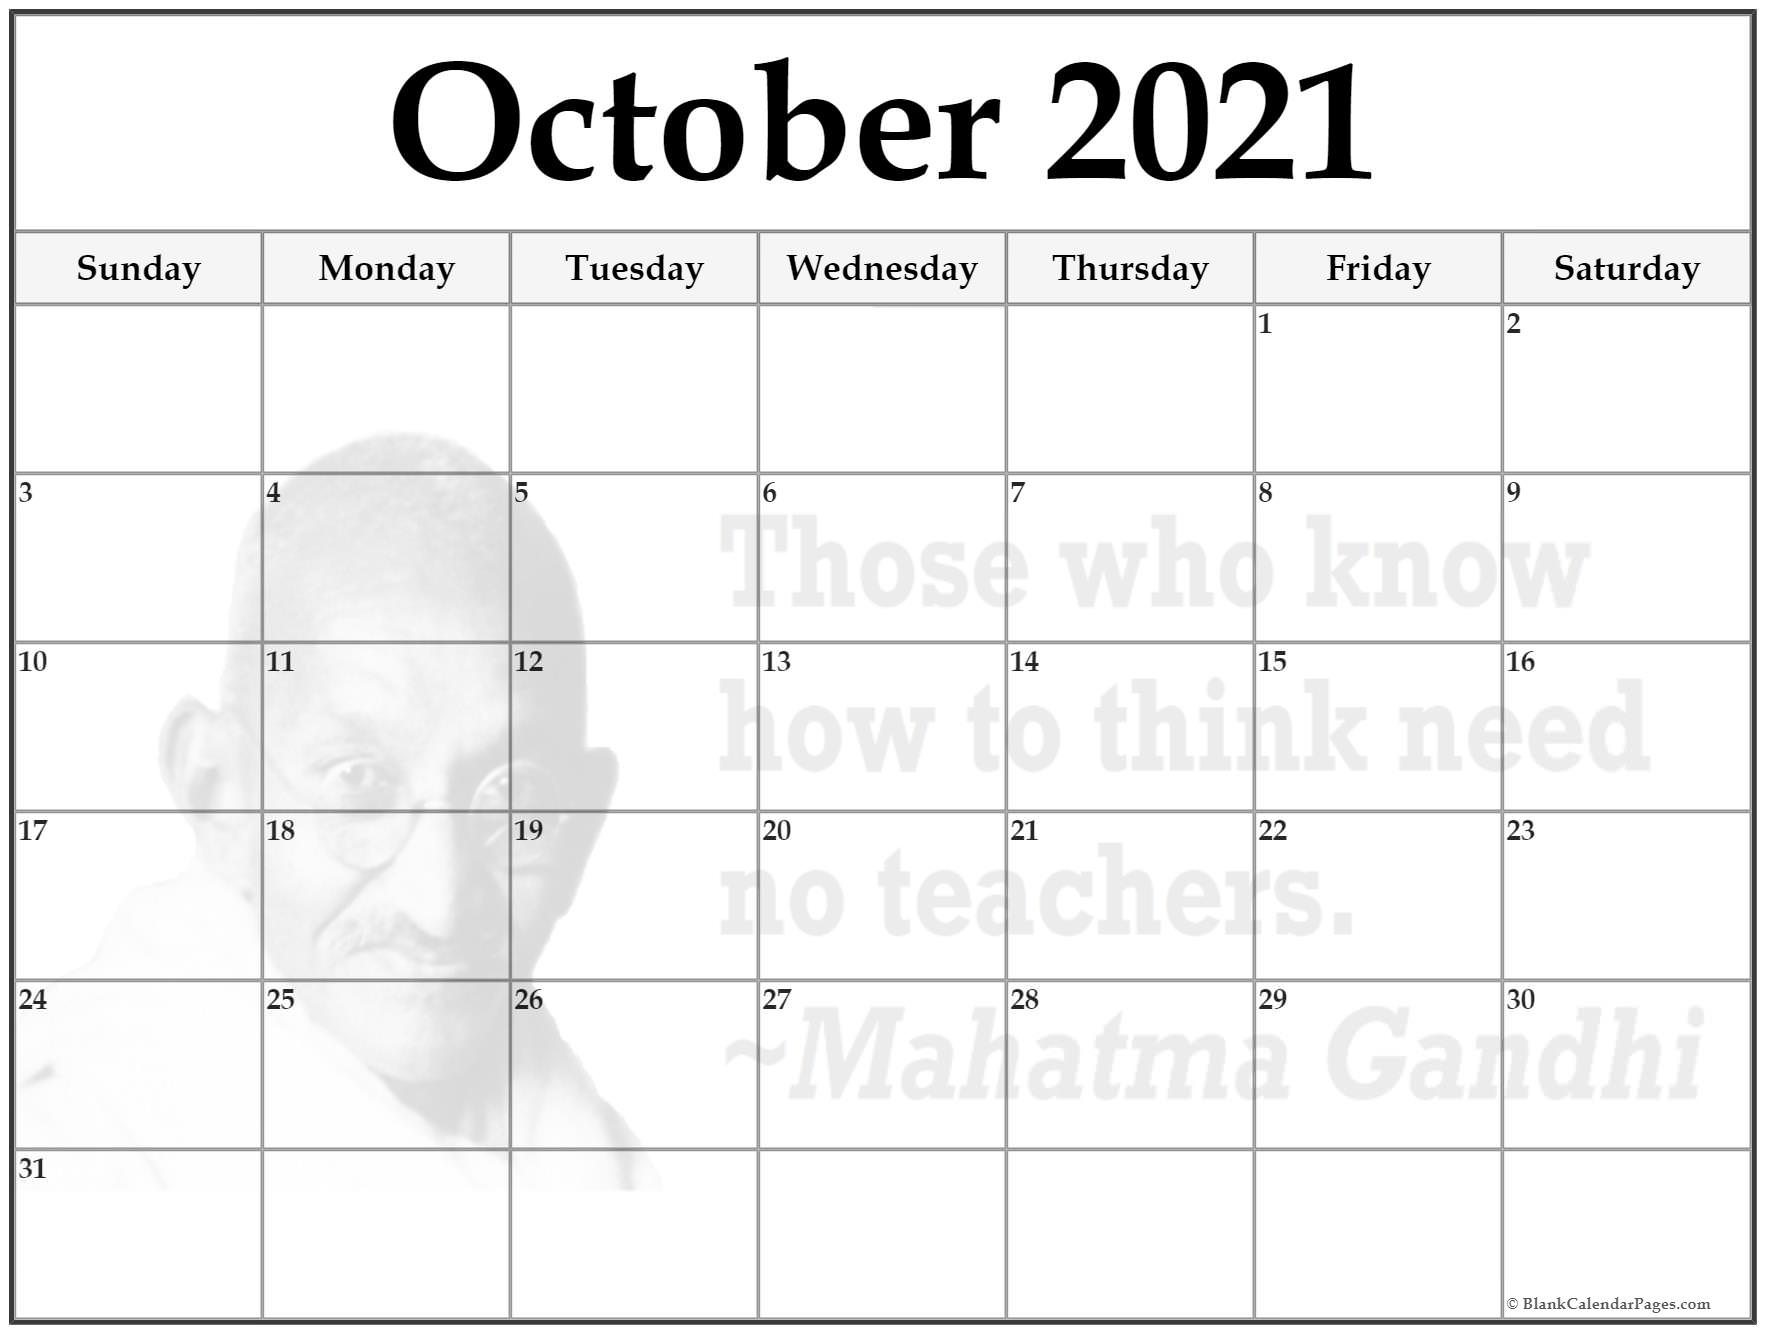 October 2021 monthly calendar template. Those who know how to think need no teachers. ~Mahatma Gandhi